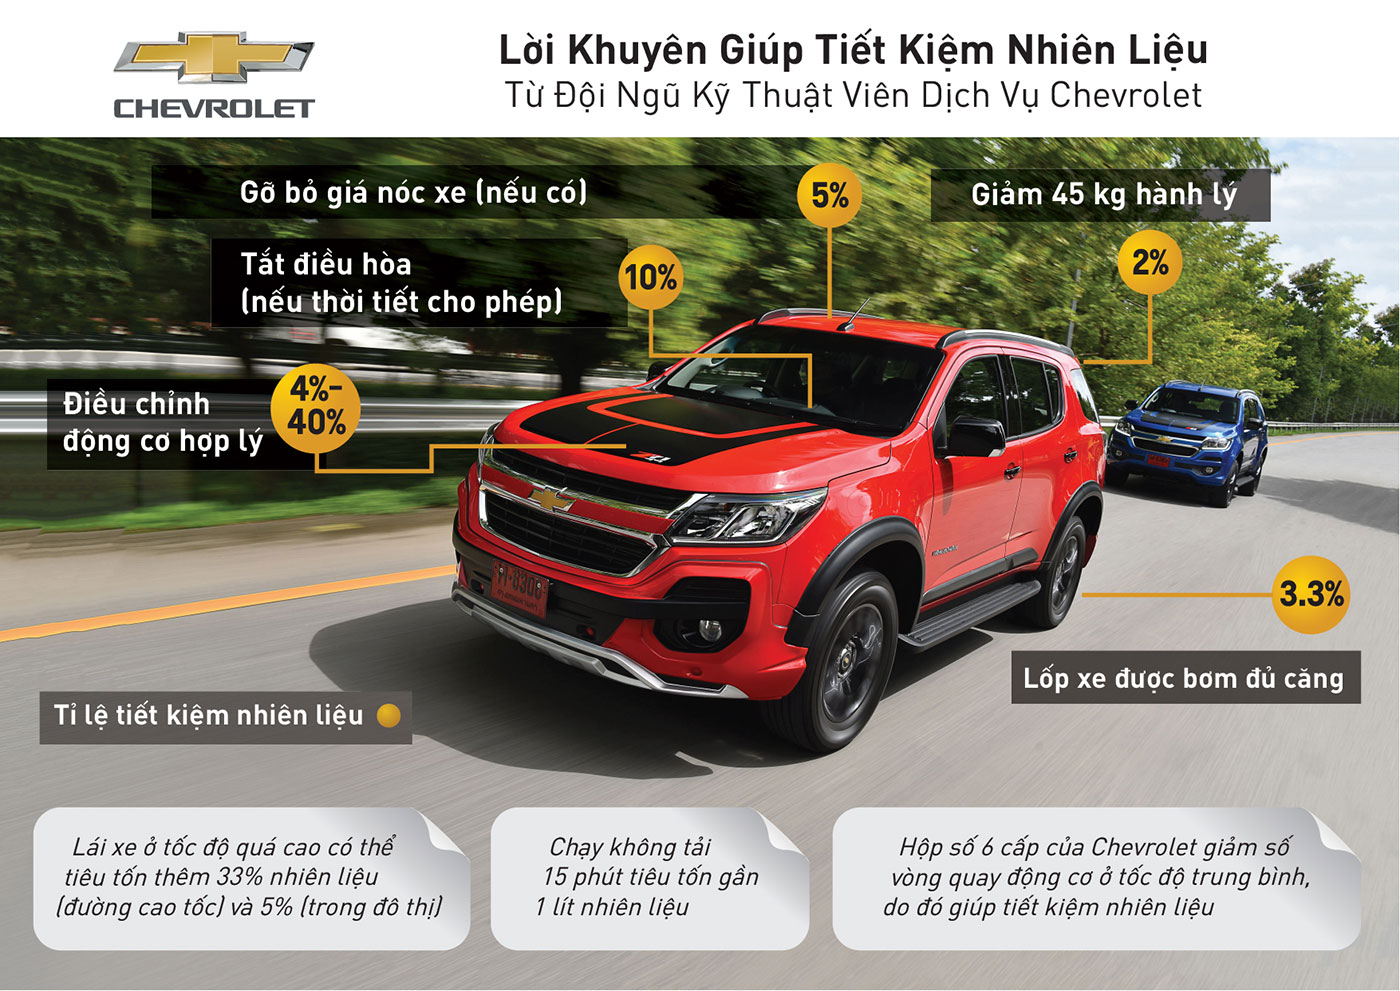 chevrolet-fuel-saving-tips-vn.jpg